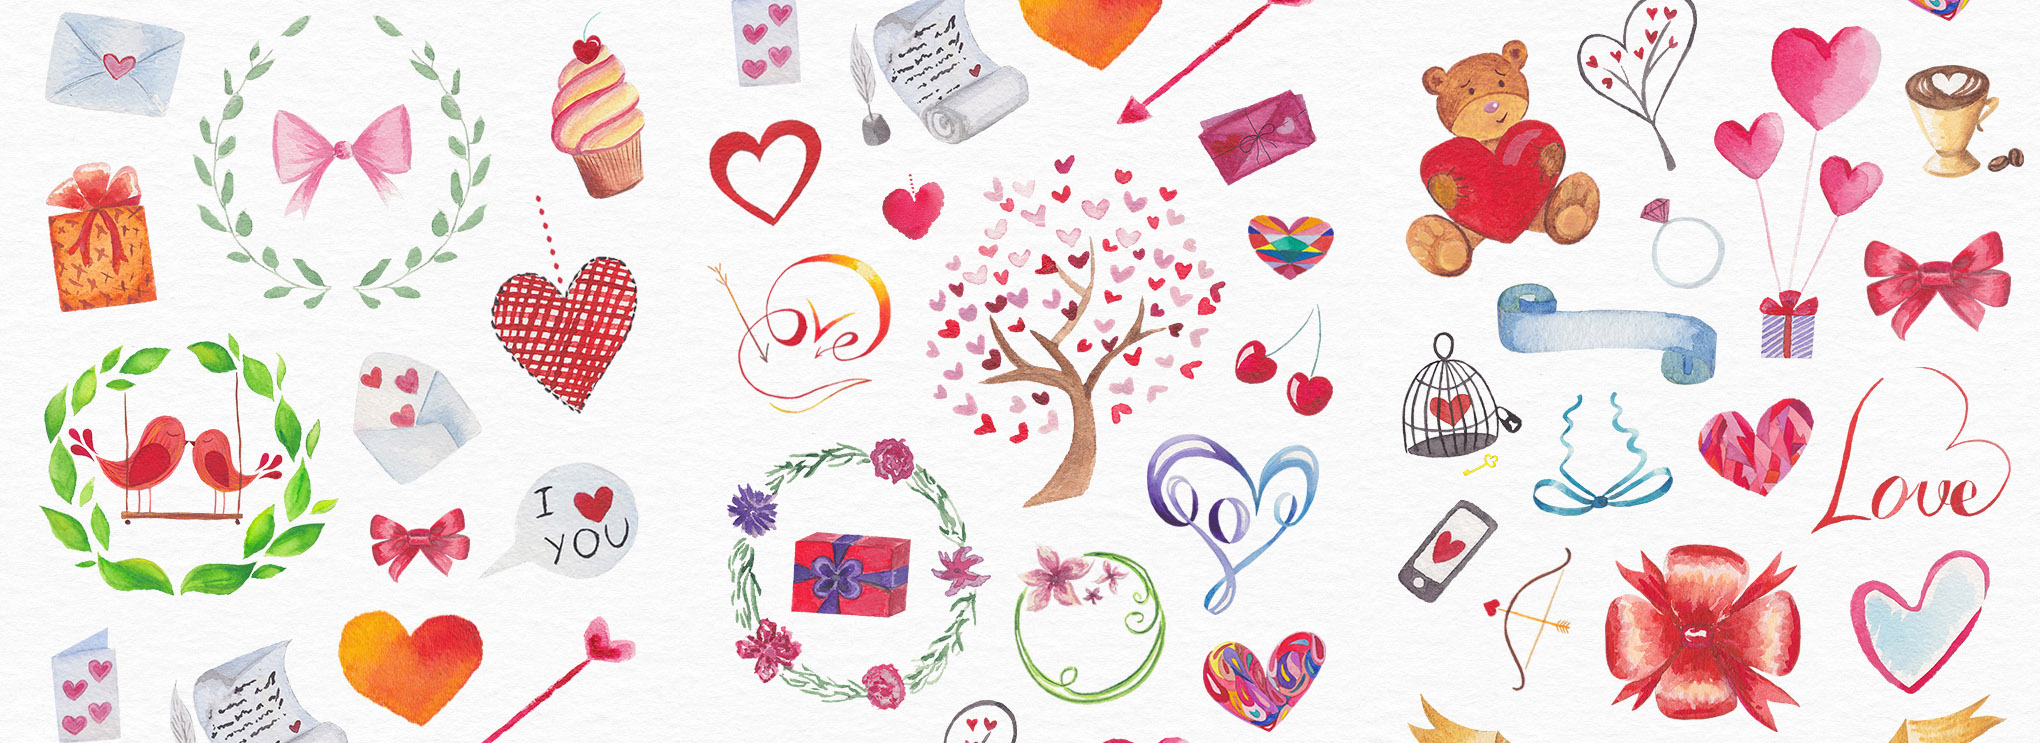 Free Watercolors: Backgrounds, Patterns, Objects, Logos.